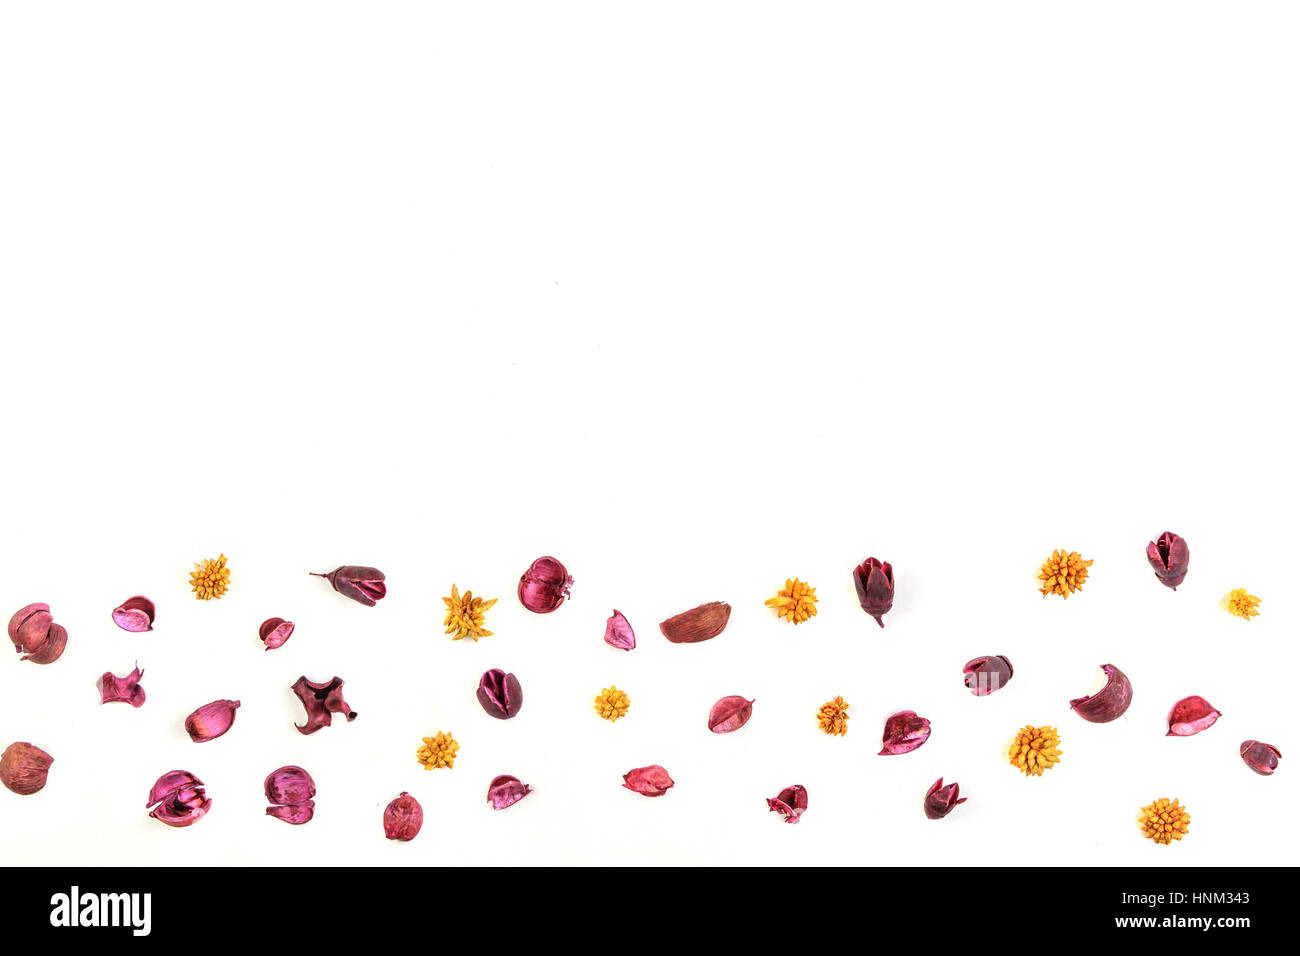 Dry flowers and leaves frame on white background - Stock Image